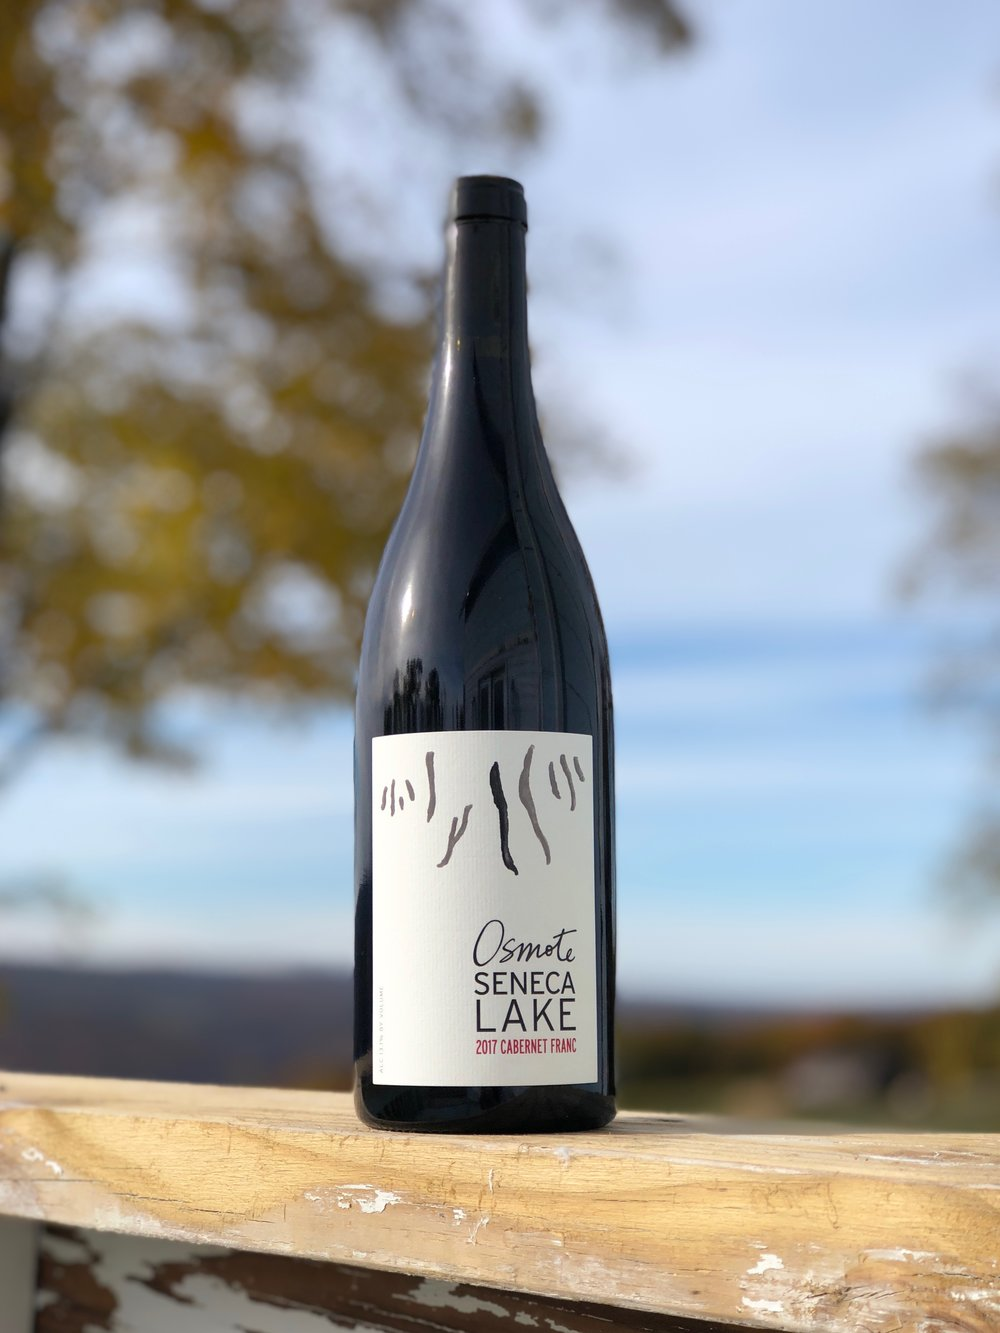 2017 seneca lake cabernet franc - Playful tannins on a sunny, autumn afternoon…